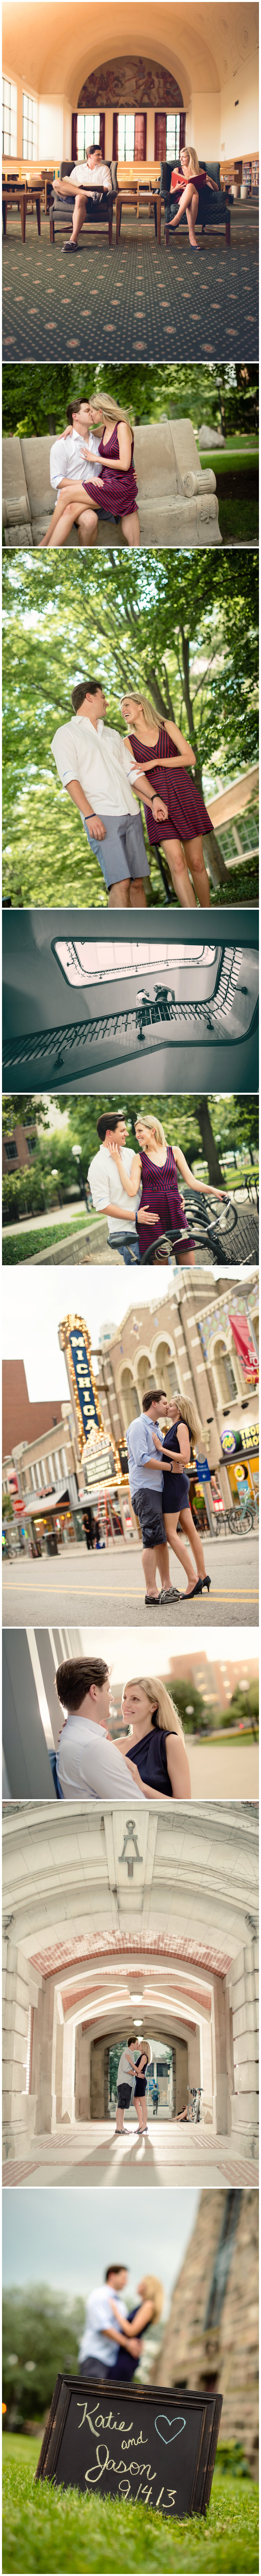 engagement,couple,wedding,portrait,photography,michigan,west michigan,muskegon,ann arbor,urban